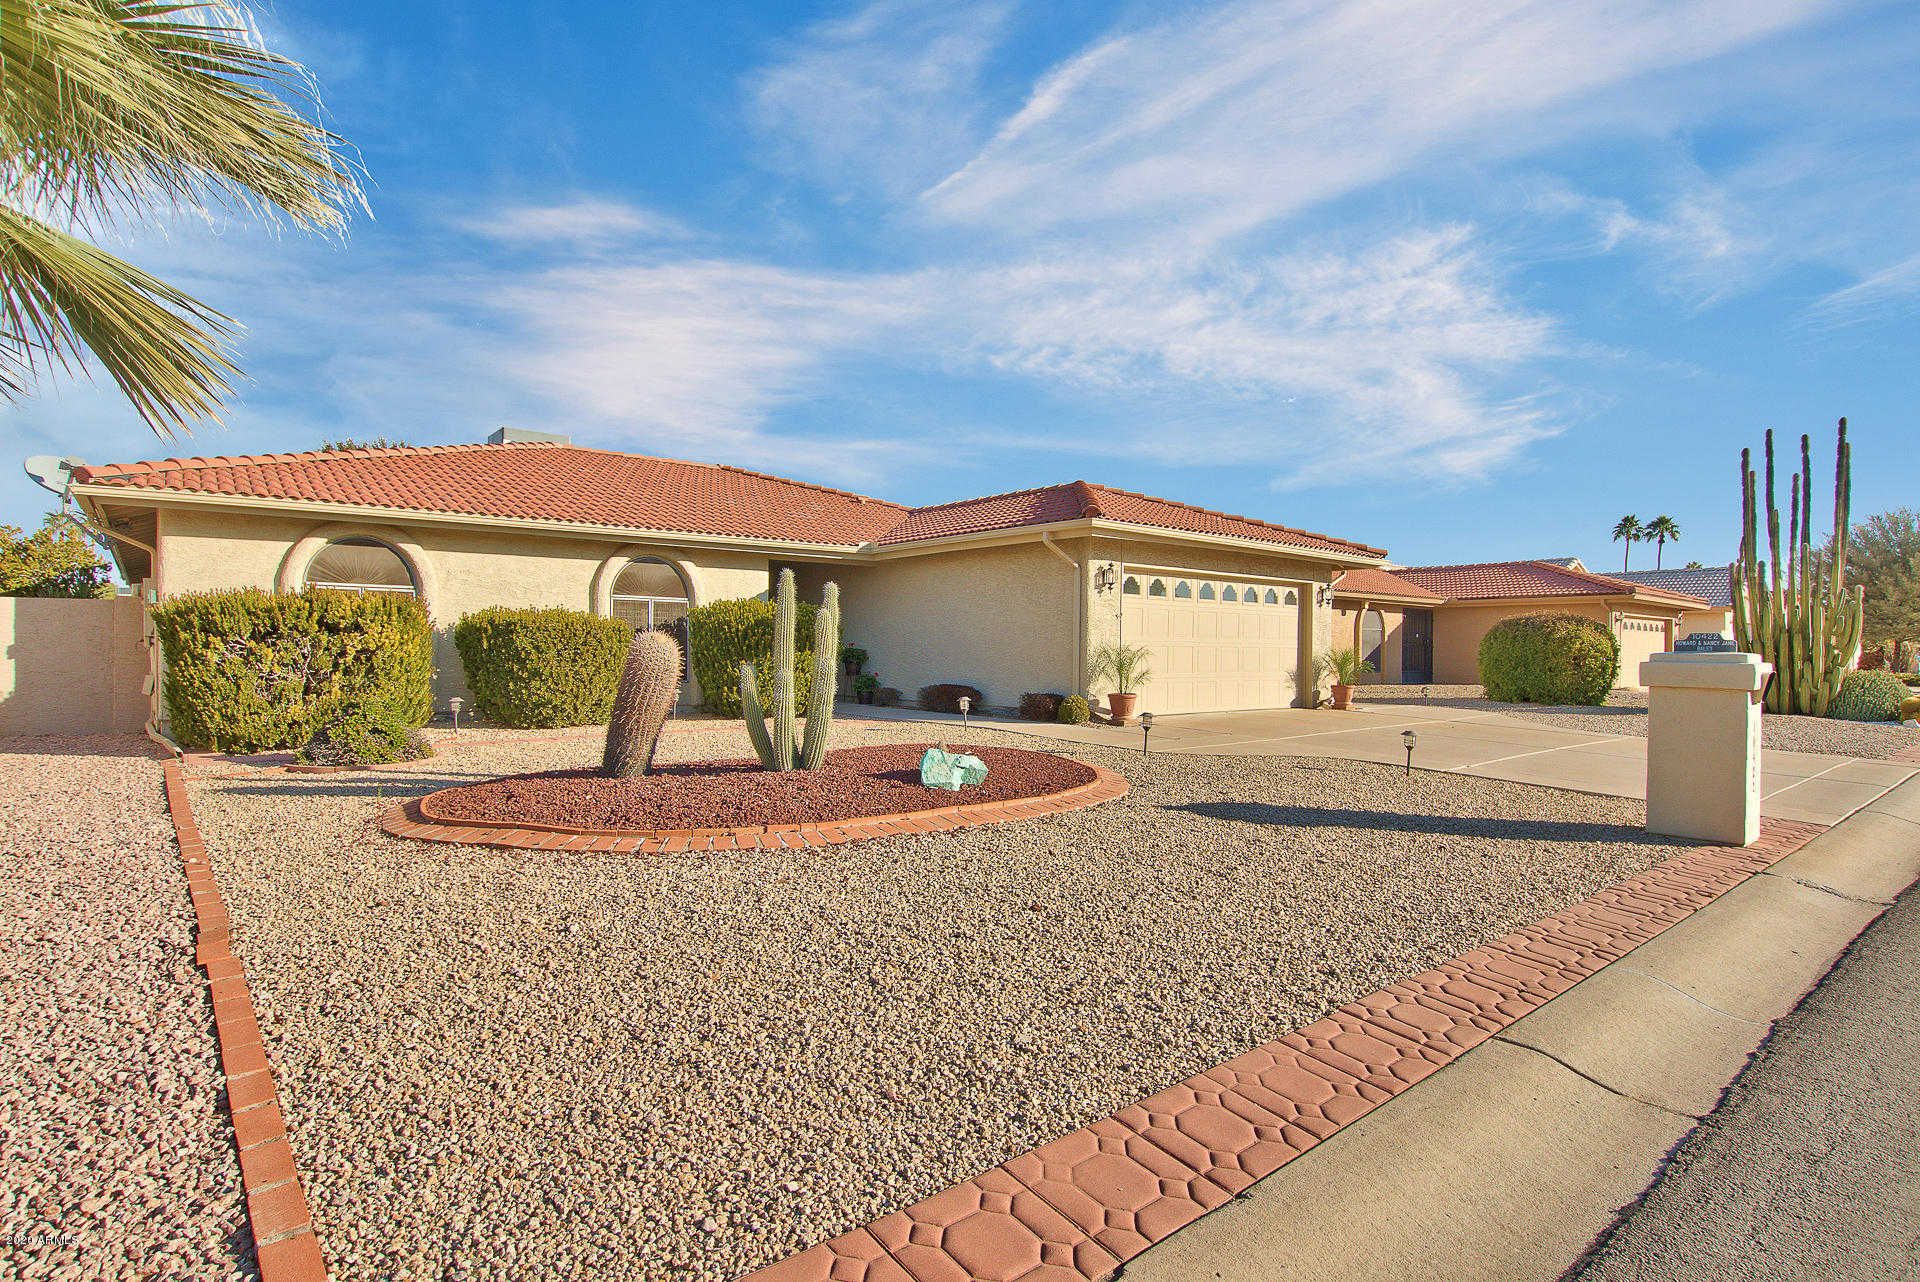 $315,000 - 2Br/2Ba - Home for Sale in Sun Lakes 21, Lot 1-407, Tr A-d, Sun Lakes